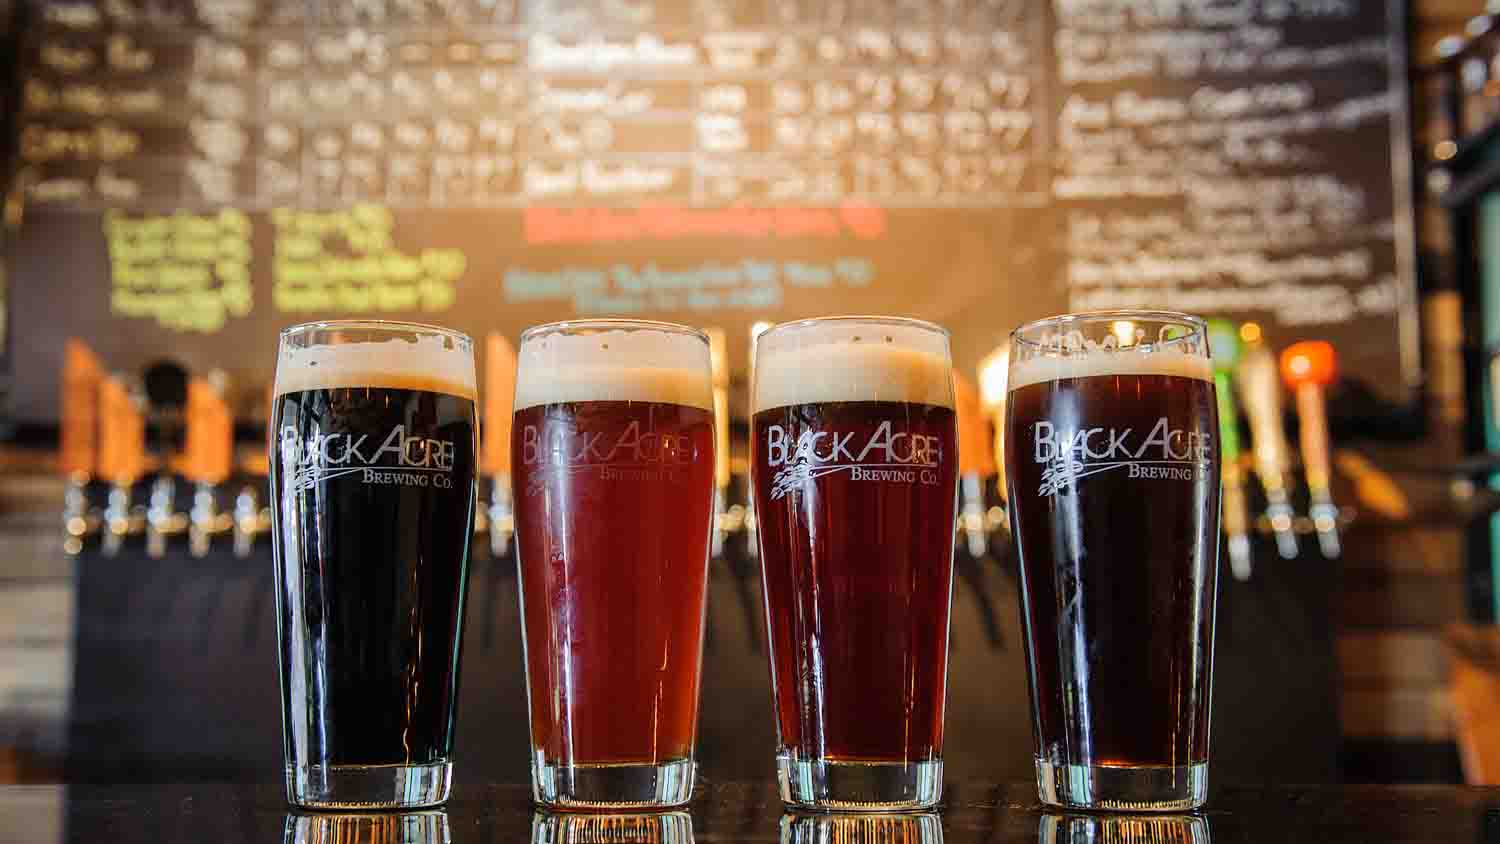 Black acre brewery 3